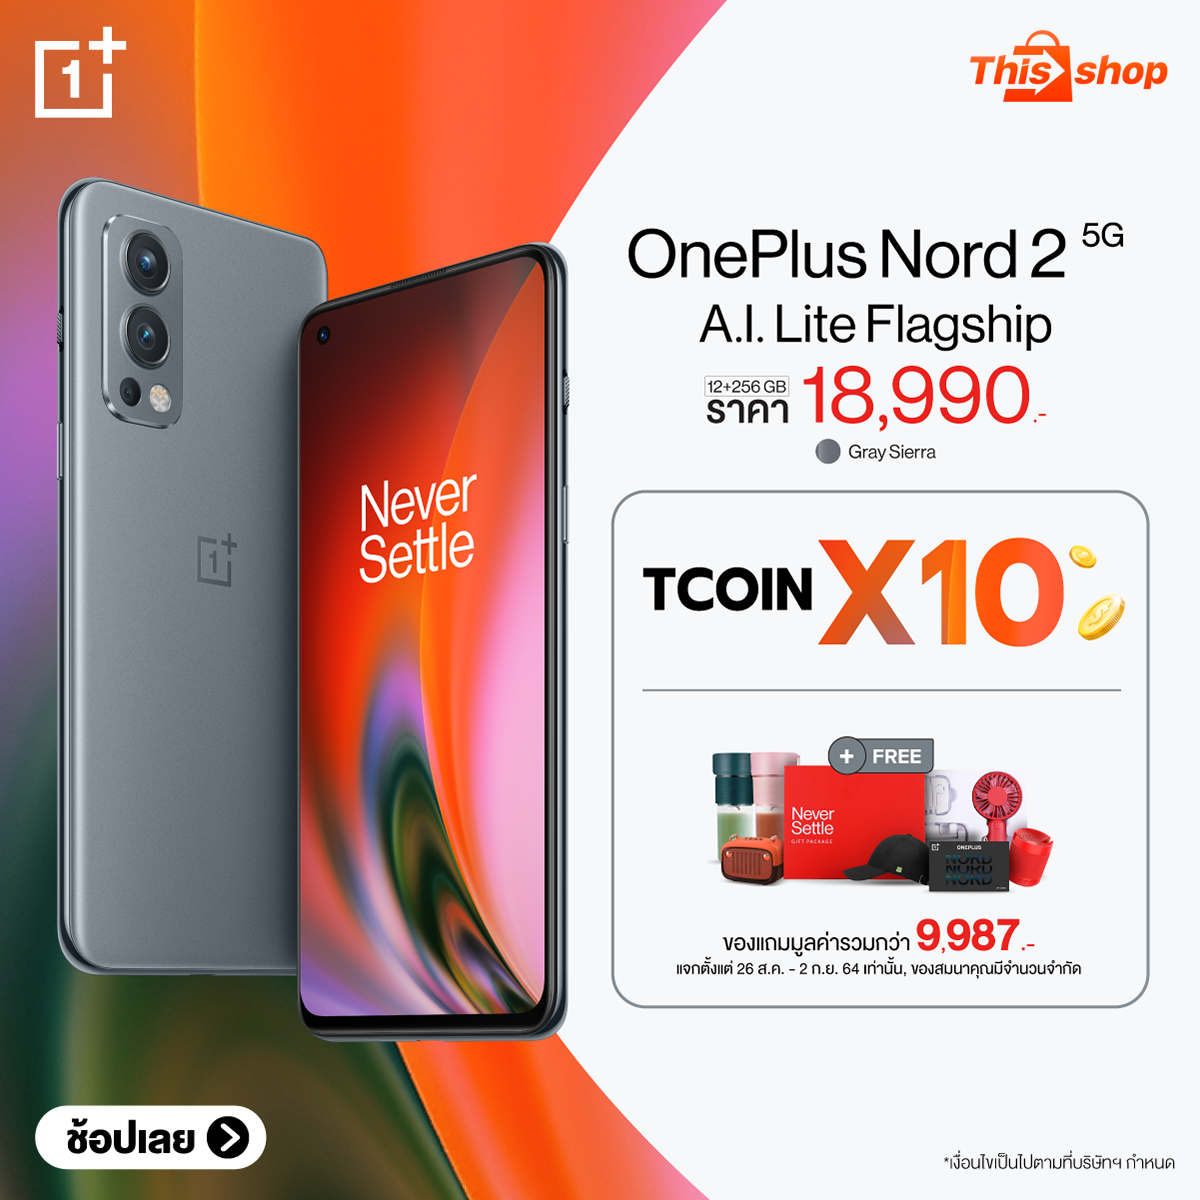 OnePlus-Nord-2-First-Sale-@Thisshop_0